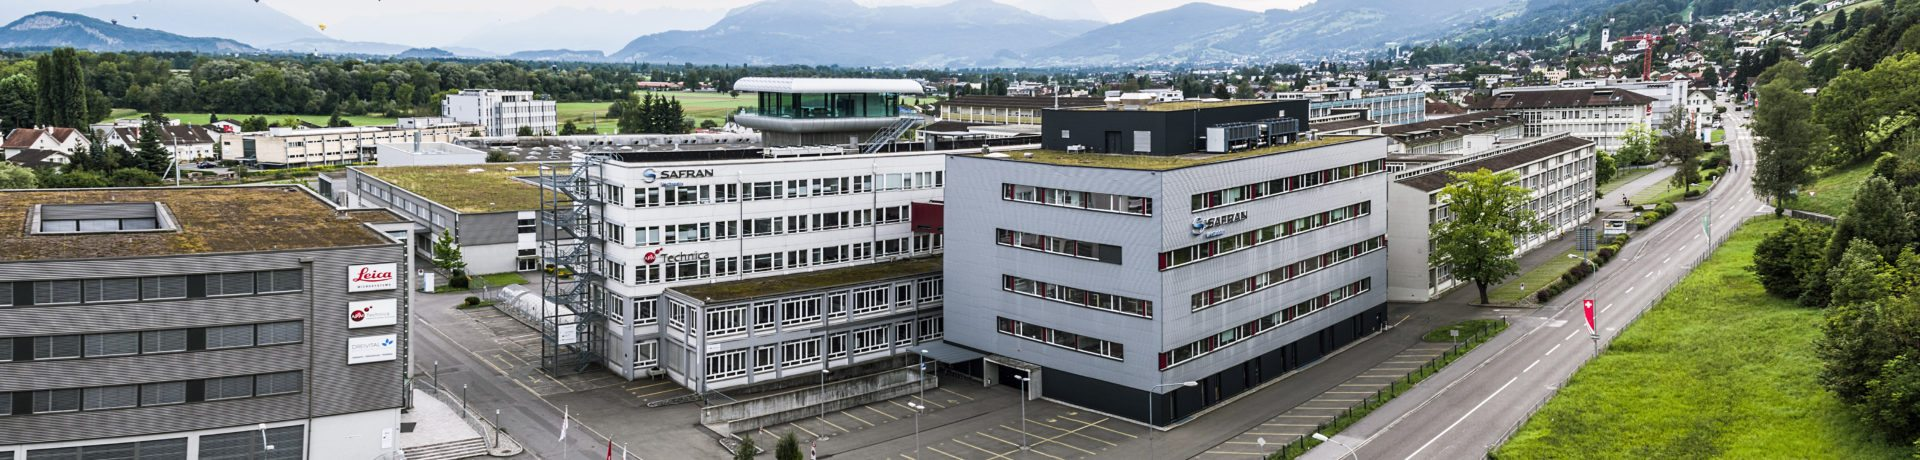 Safran Vectronix AG Headquaters Heerbrugg, Switzerland